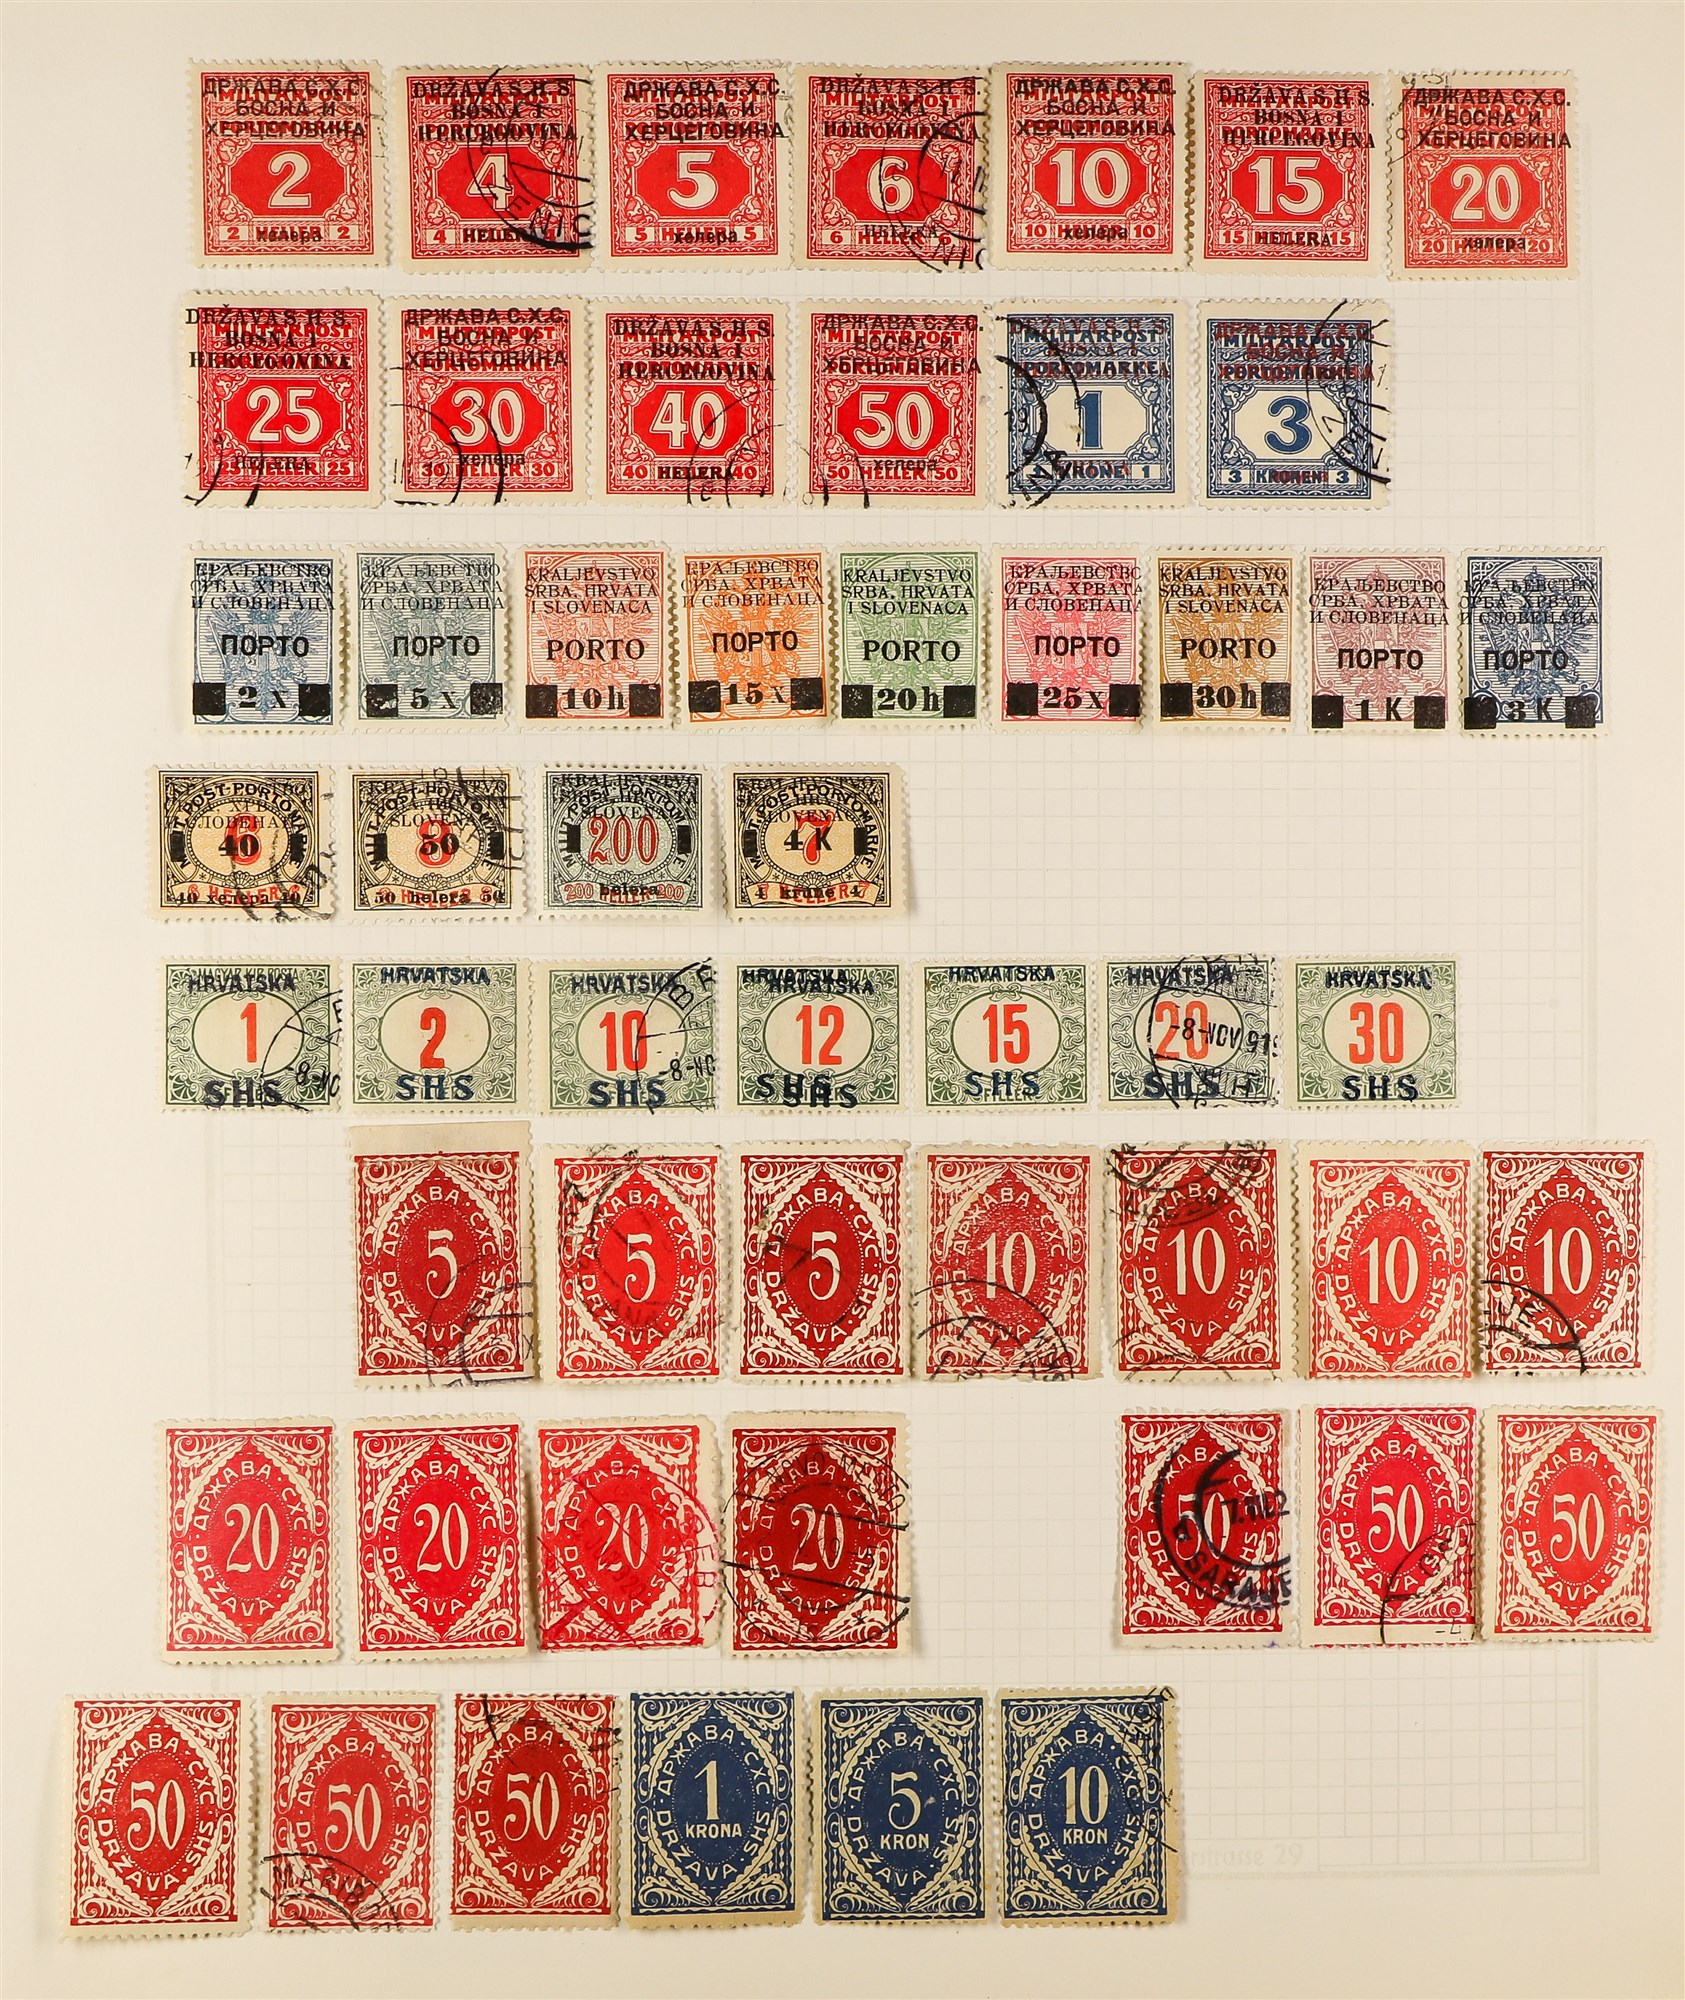 YUGOSLAVIA 1919-80 COLLECTION of mint and used issues in an album, incl. extensive Chainbreakers, - Image 10 of 17